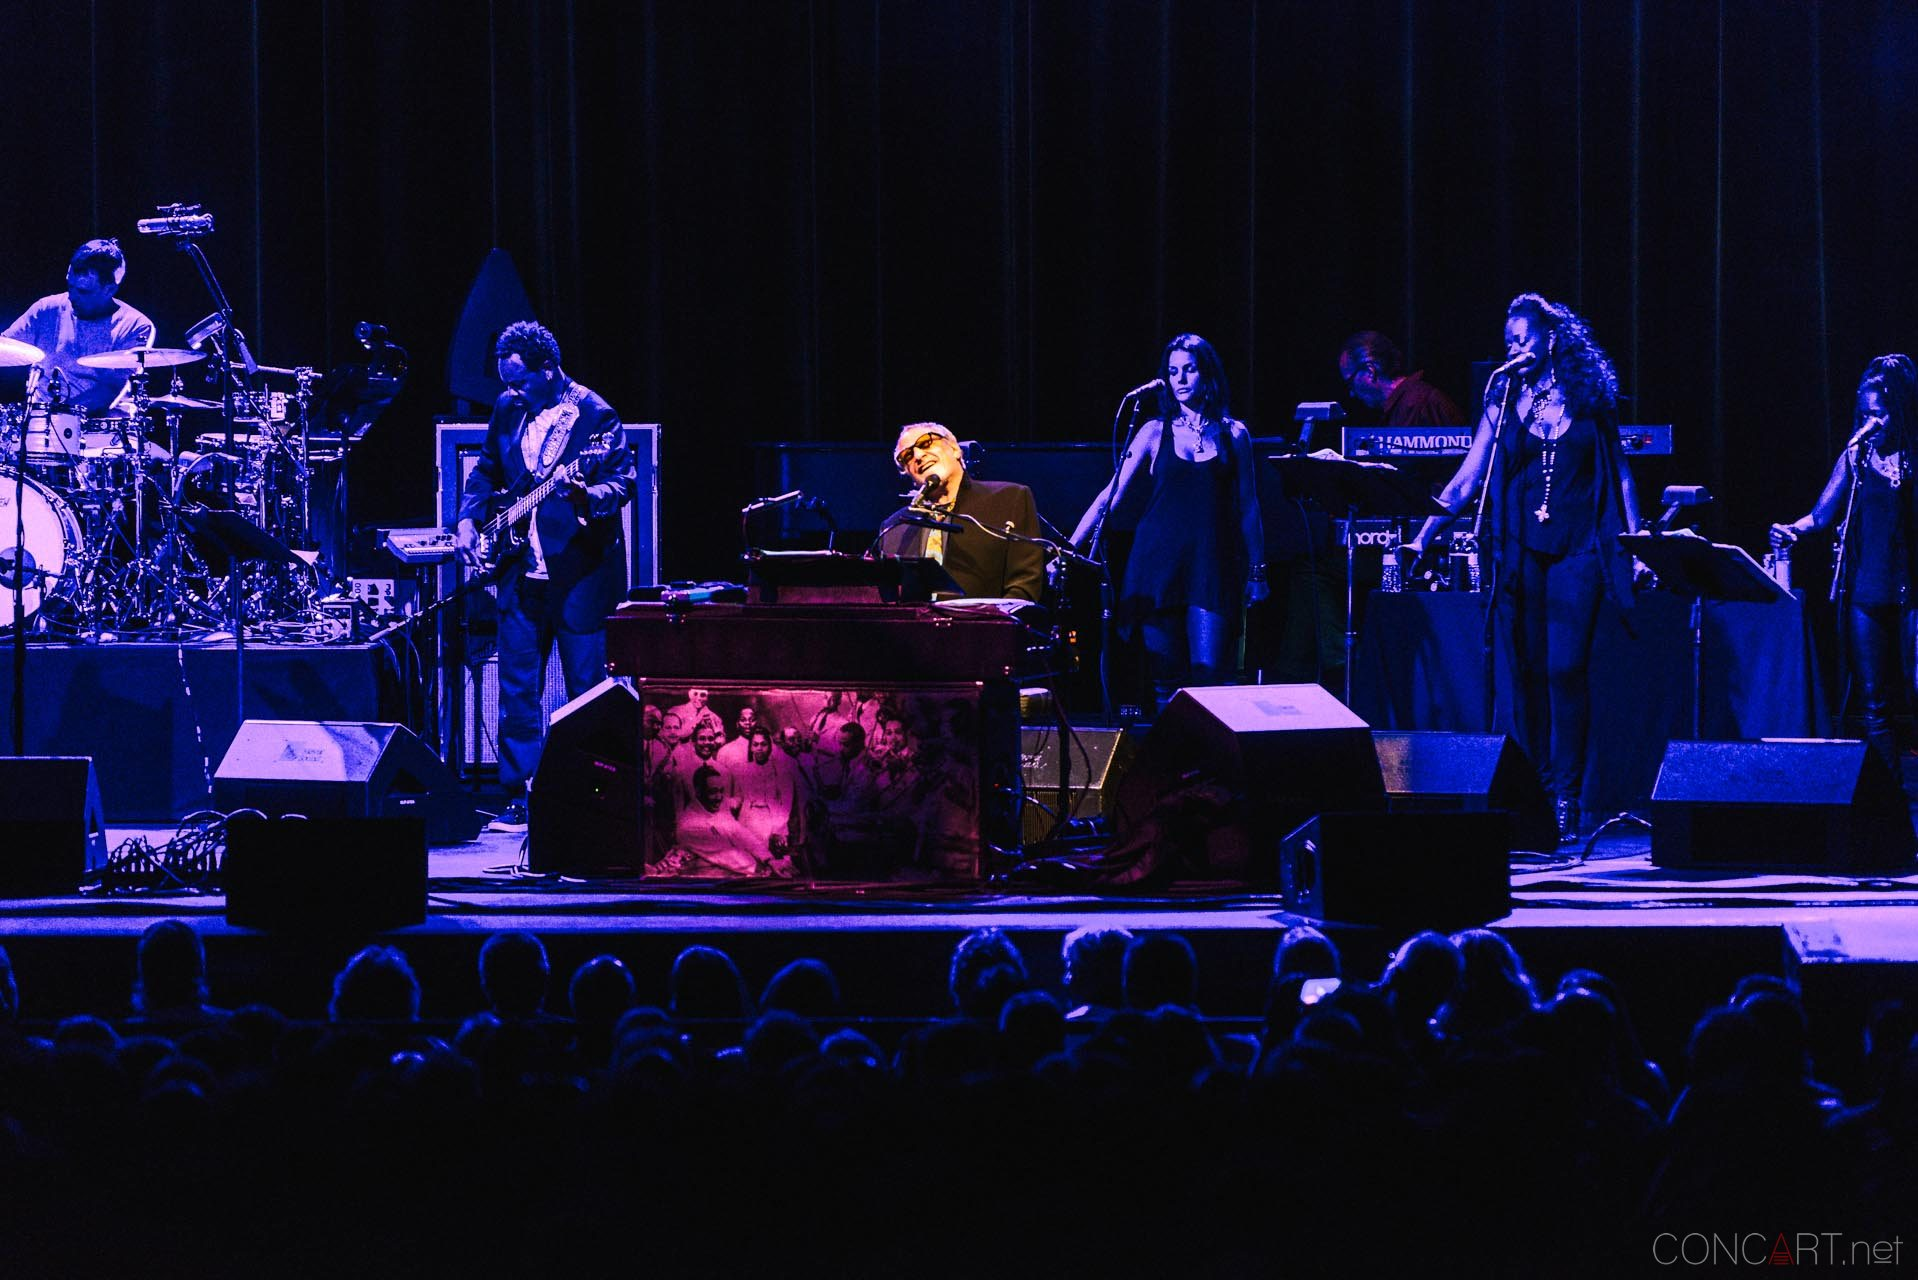 steely_dan_live_old_national_murat_theatre_indianapolis_2013-05